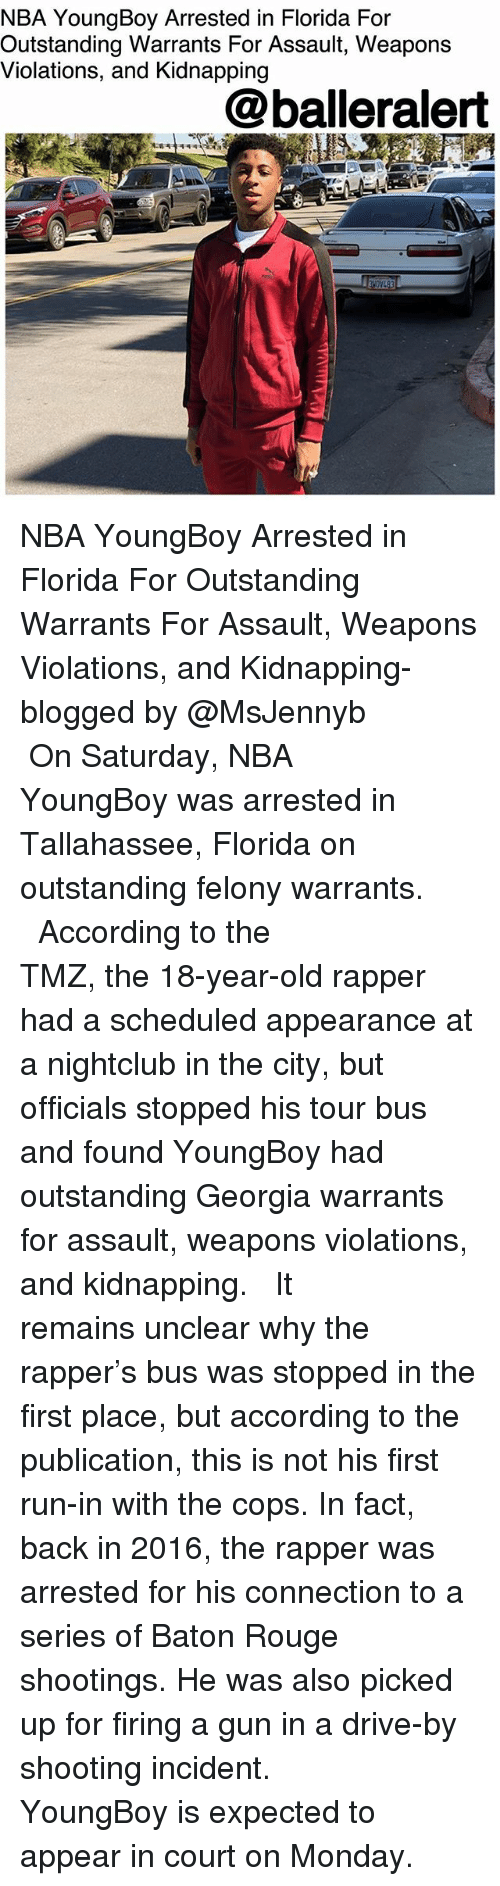 warrants: NBA YoungBoy Arrested in Florida For  Outstanding Warrants For Assault, Weapons  Violations, and Kidnapping  @balleralert NBA YoungBoy Arrested in Florida For Outstanding Warrants For Assault, Weapons Violations, and Kidnapping- blogged by @MsJennyb ⠀⠀⠀⠀⠀⠀⠀ ⠀⠀⠀⠀⠀⠀⠀ On Saturday, NBA YoungBoy was arrested in Tallahassee, Florida on outstanding felony warrants. ⠀⠀⠀⠀⠀⠀⠀ ⠀⠀⠀⠀⠀⠀⠀ According to the TMZ, the 18-year-old rapper had a scheduled appearance at a nightclub in the city, but officials stopped his tour bus and found YoungBoy had outstanding Georgia warrants for assault, weapons violations, and kidnapping. ⠀⠀⠀⠀⠀⠀⠀ ⠀⠀⠀⠀⠀⠀⠀ It remains unclear why the rapper's bus was stopped in the first place, but according to the publication, this is not his first run-in with the cops. In fact, back in 2016, the rapper was arrested for his connection to a series of Baton Rouge shootings. He was also picked up for firing a gun in a drive-by shooting incident. ⠀⠀⠀⠀⠀⠀⠀ ⠀⠀⠀⠀⠀⠀⠀ YoungBoy is expected to appear in court on Monday.